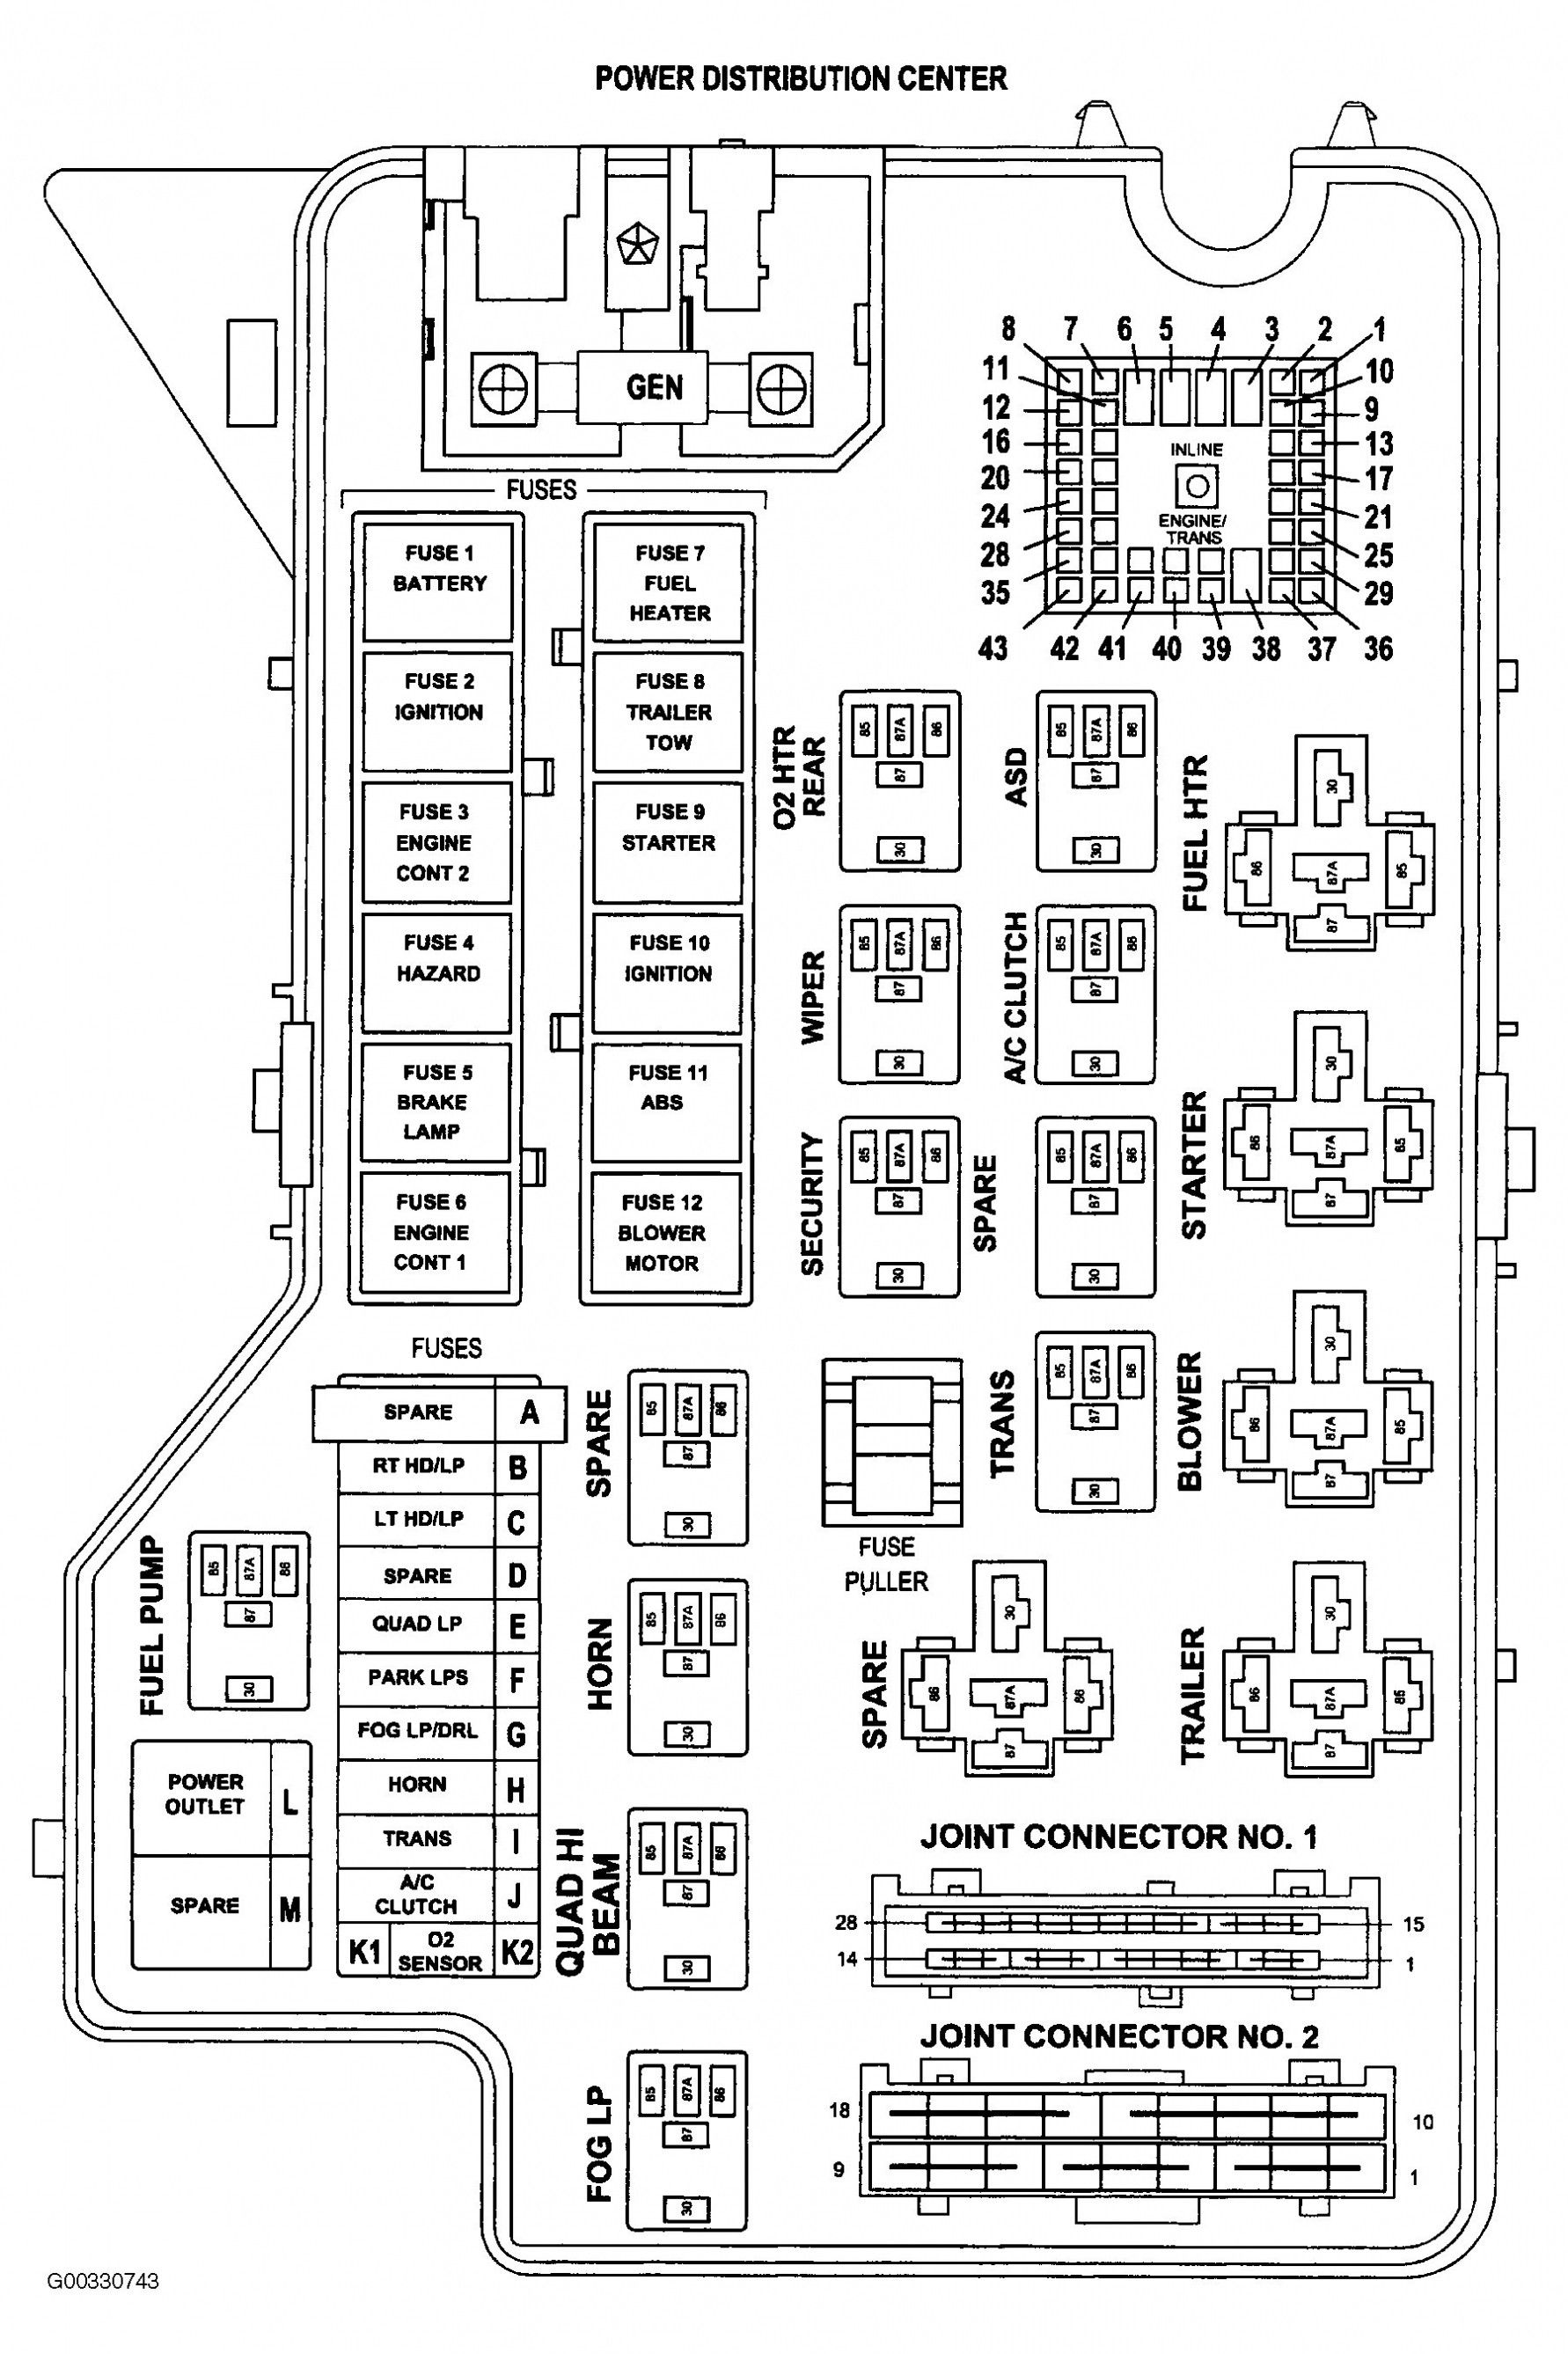 small resolution of new 2011 dodge ram 1500 radio wiring diagram diagram diagramsample diagramtemplate wiringdiagram